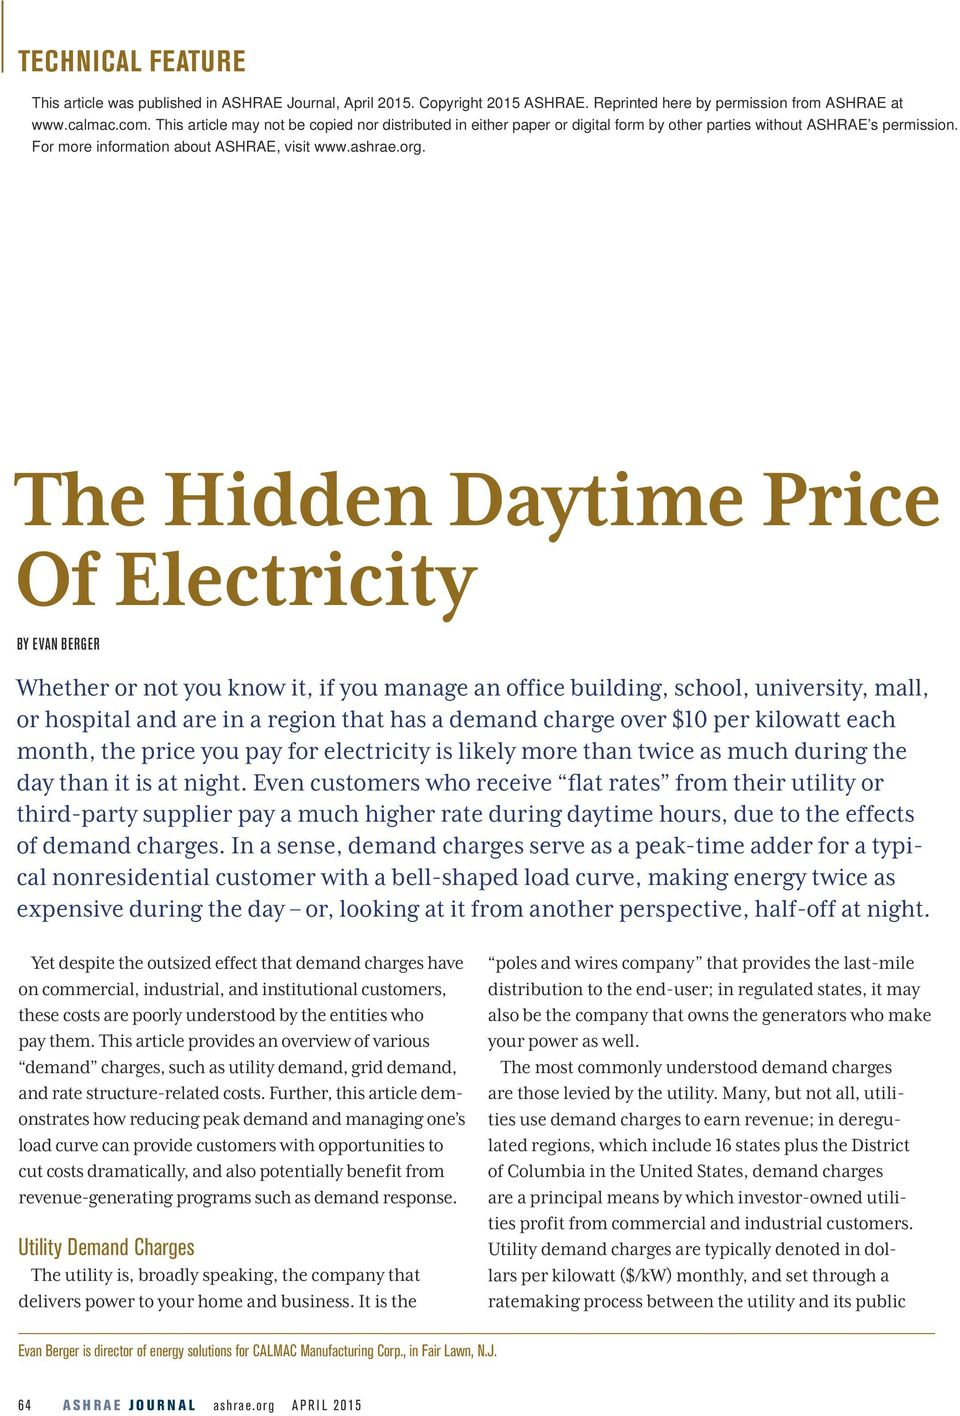 Even customers who receive flat rates from their utility or third-party supplier pay a much higher rate during daytime hours, due to the effects of demand charges.